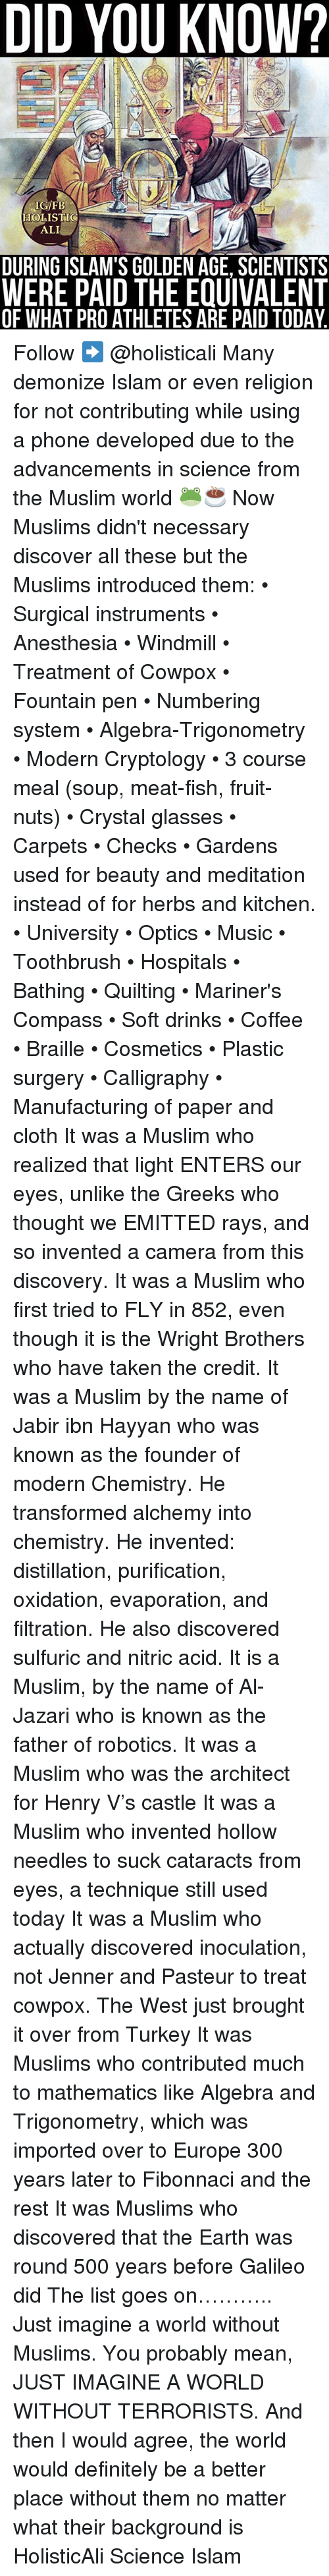 mariners: DID YOU KNOW?  IG/FB  HOLISTIG  ALI  DURING ISLAM'S GOLDEN AGE, SCIENTISTS  WERE PAID THE EQUIVALENT  OF WHAT PROATHLETES ARE PAID TODAY. Follow ➡️ @holisticali Many demonize Islam or even religion for not contributing while using a phone developed due to the advancements in science from the Muslim world 🐸☕️ Now Muslims didn't necessary discover all these but the Muslims introduced them: • Surgical instruments • Anesthesia • Windmill • Treatment of Cowpox • Fountain pen • Numbering system • Algebra-Trigonometry • Modern Cryptology • 3 course meal (soup, meat-fish, fruit-nuts) • Crystal glasses • Carpets • Checks • Gardens used for beauty and meditation instead of for herbs and kitchen. • University • Optics • Music • Toothbrush • Hospitals • Bathing • Quilting • Mariner's Compass • Soft drinks • Coffee • Braille • Cosmetics • Plastic surgery • Calligraphy • Manufacturing of paper and cloth It was a Muslim who realized that light ENTERS our eyes, unlike the Greeks who thought we EMITTED rays, and so invented a camera from this discovery. It was a Muslim who first tried to FLY in 852, even though it is the Wright Brothers who have taken the credit. It was a Muslim by the name of Jabir ibn Hayyan who was known as the founder of modern Chemistry. He transformed alchemy into chemistry. He invented: distillation, purification, oxidation, evaporation, and filtration. He also discovered sulfuric and nitric acid. It is a Muslim, by the name of Al-Jazari who is known as the father of robotics. It was a Muslim who was the architect for Henry V's castle It was a Muslim who invented hollow needles to suck cataracts from eyes, a technique still used today It was a Muslim who actually discovered inoculation, not Jenner and Pasteur to treat cowpox. The West just brought it over from Turkey It was Muslims who contributed much to mathematics like Algebra and Trigonometry, which was imported over to Europe 300 years later to Fibonnaci and the rest It was Muslims who discovered that the Earth was round 500 years before Galileo did The list goes on……….. Just imagine a world without Muslims. You probably mean, JUST IMAGINE A WORLD WITHOUT TERRORISTS. And then I would agree, the world would definitely be a better place without them no matter what their background is HolisticAli Science Islam